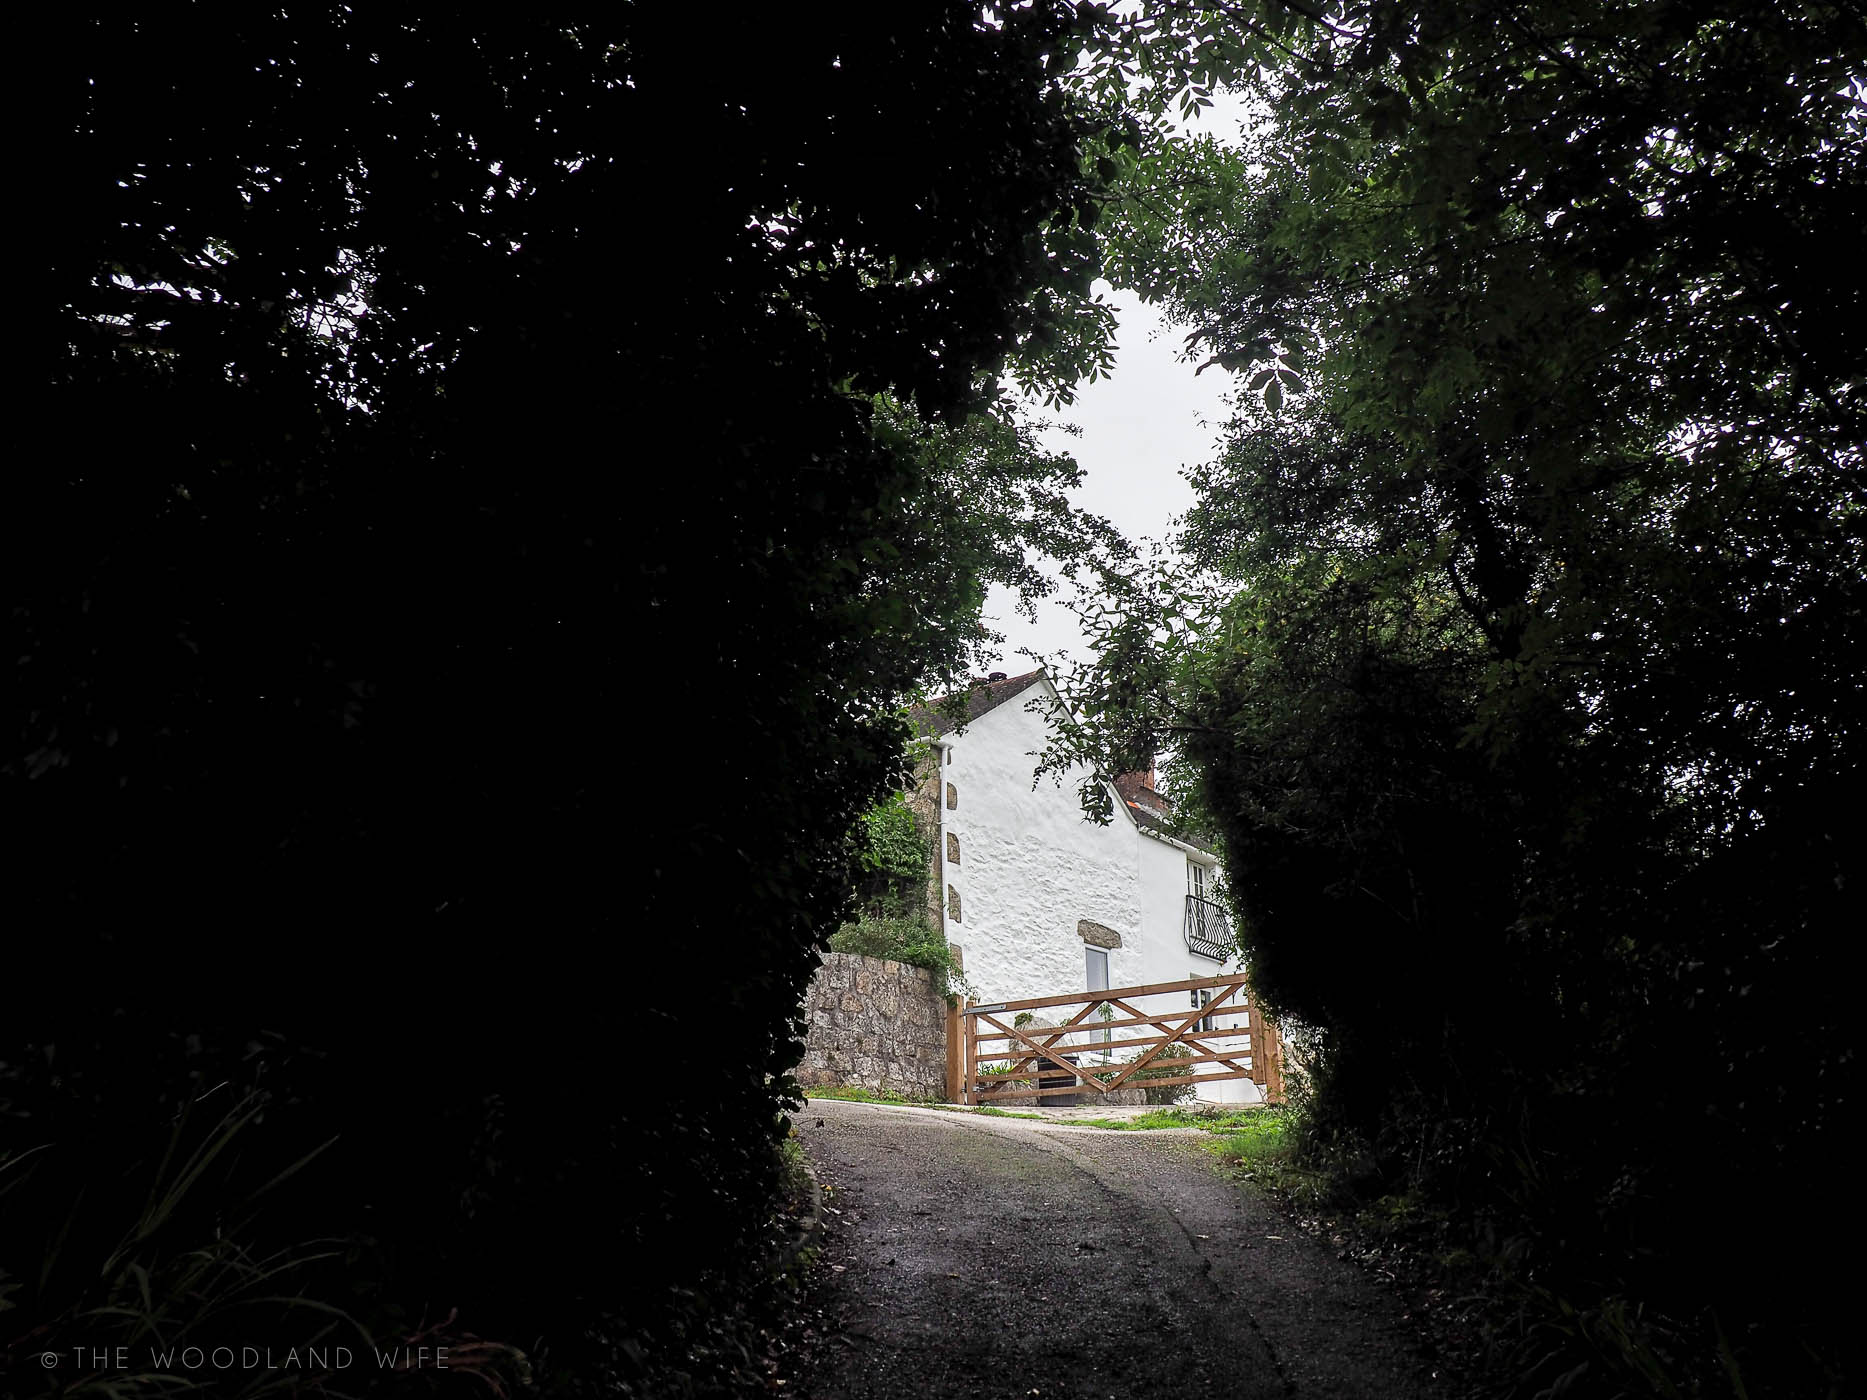 The Woodland Wife - South Coast of Cornwall